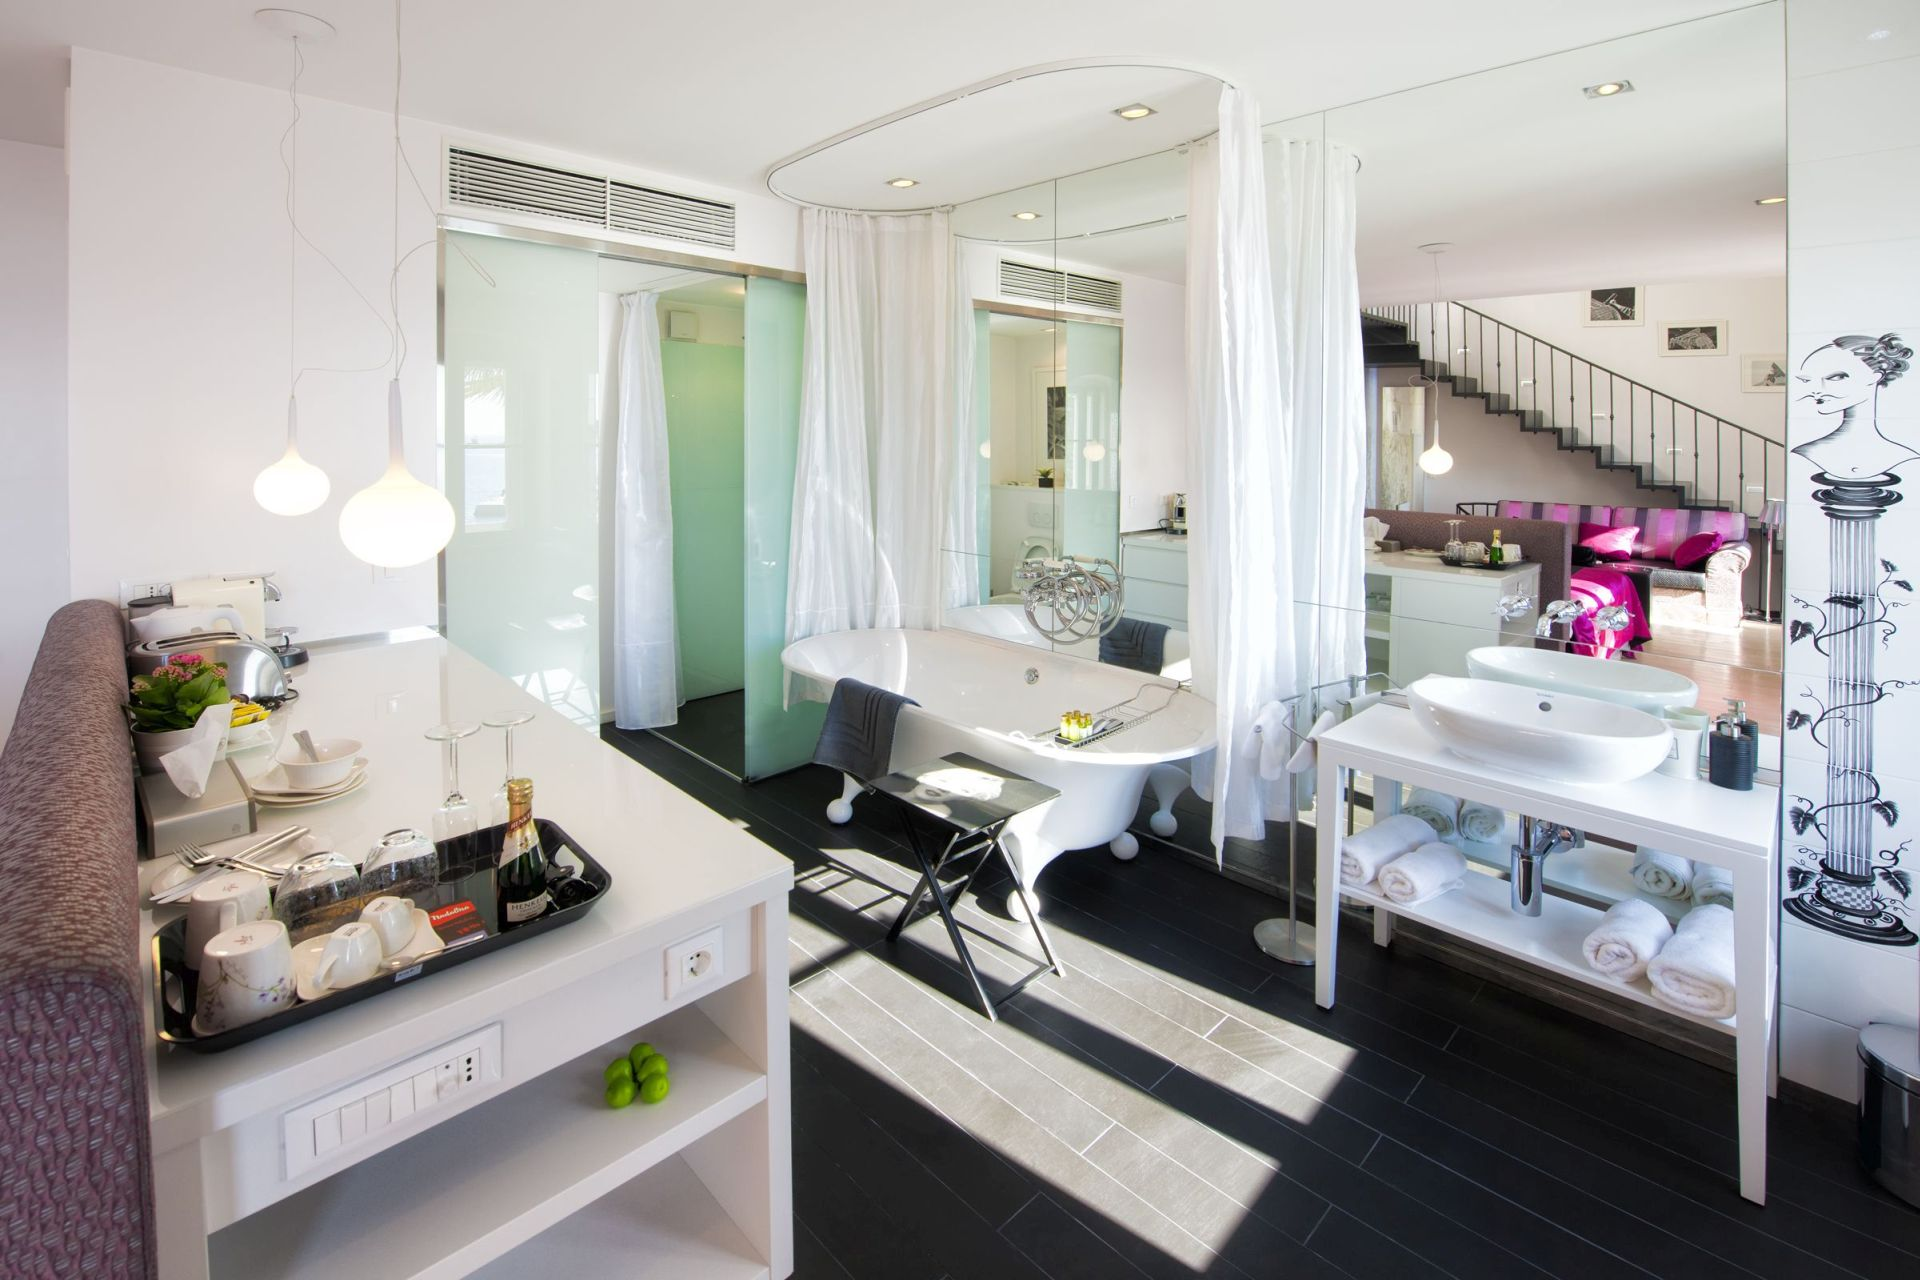 Riva Luxury Suite bathroom